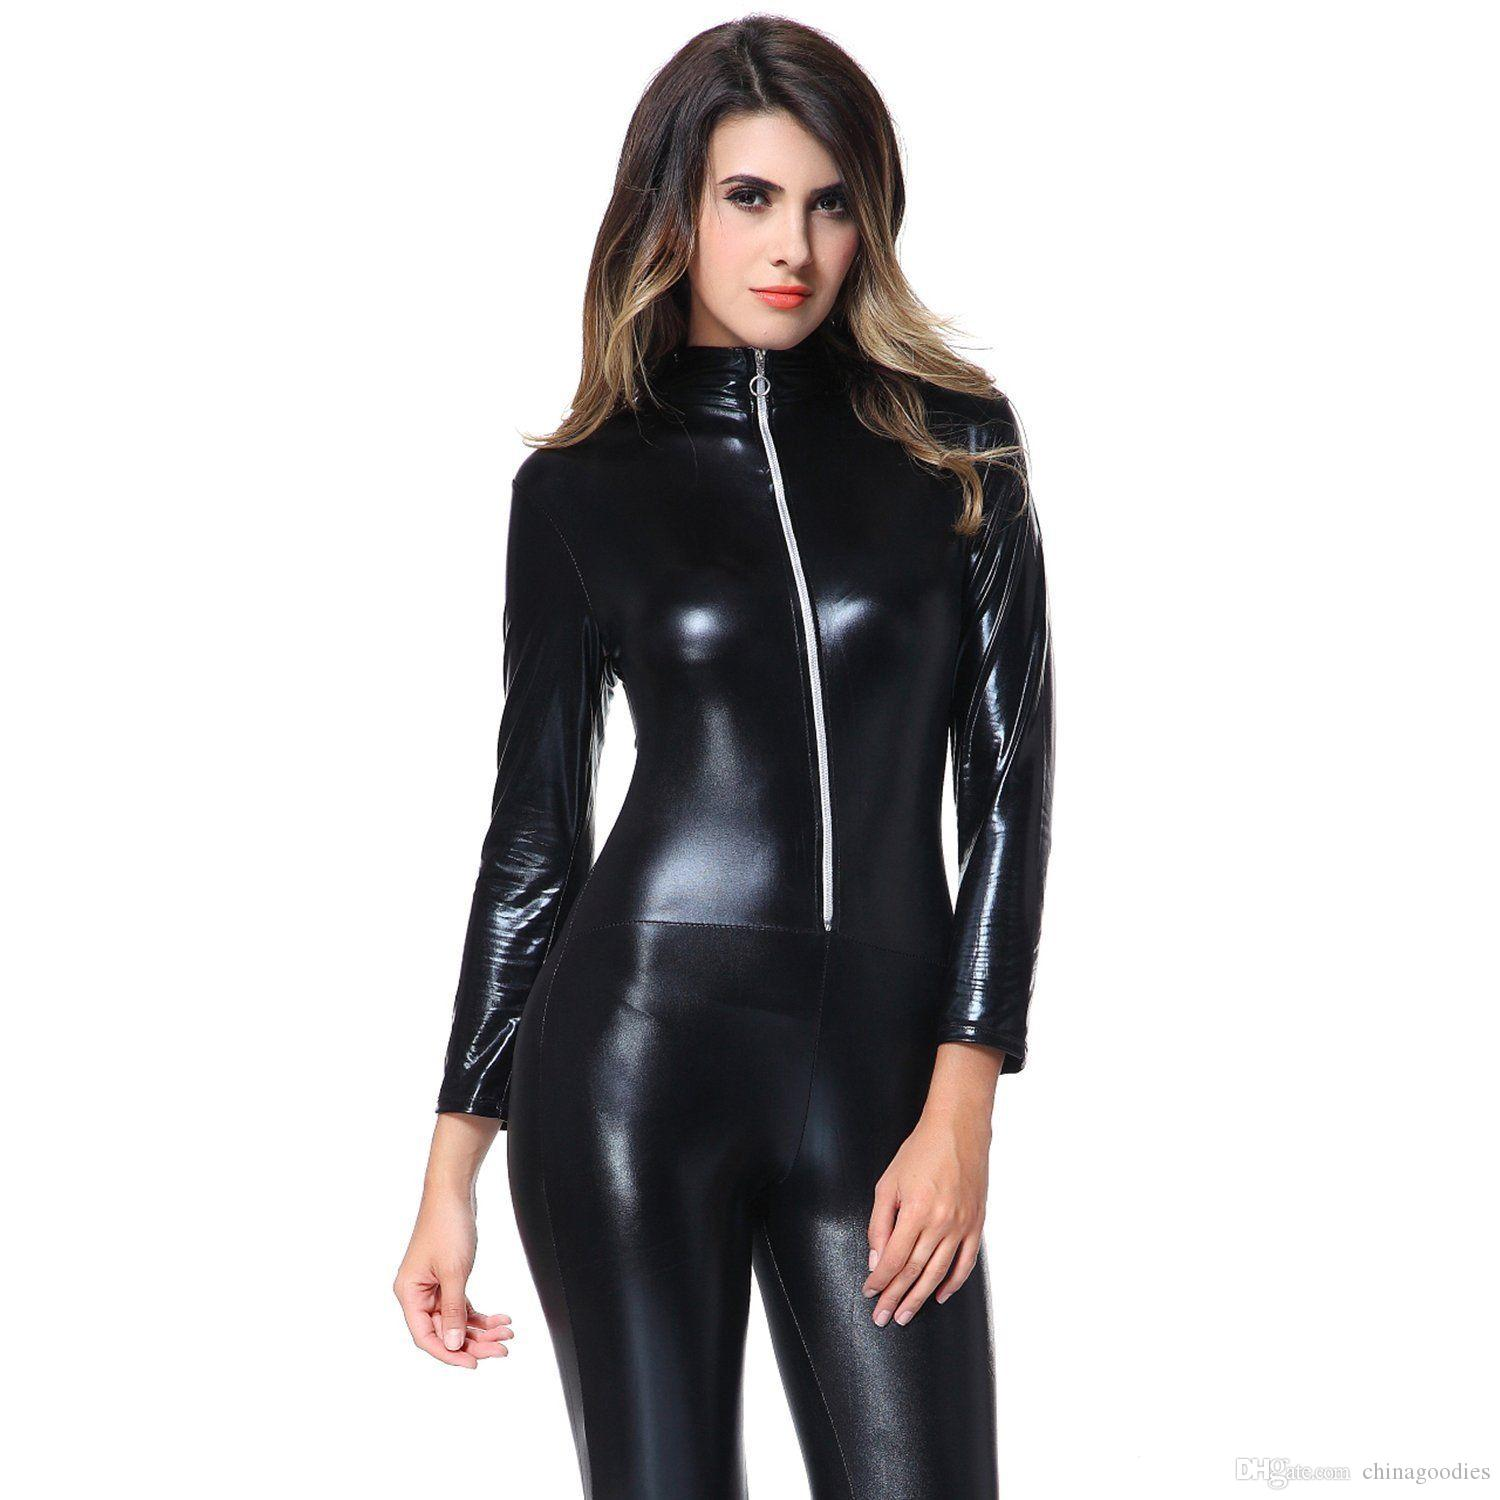 2e6d78789c 2019 Sexy Wetlook Hot Shiny Black Stretch PVC Catsuit Cat Woman Outfit  Costume Jumpsuit Gothic Clubwear From Chinagoodies